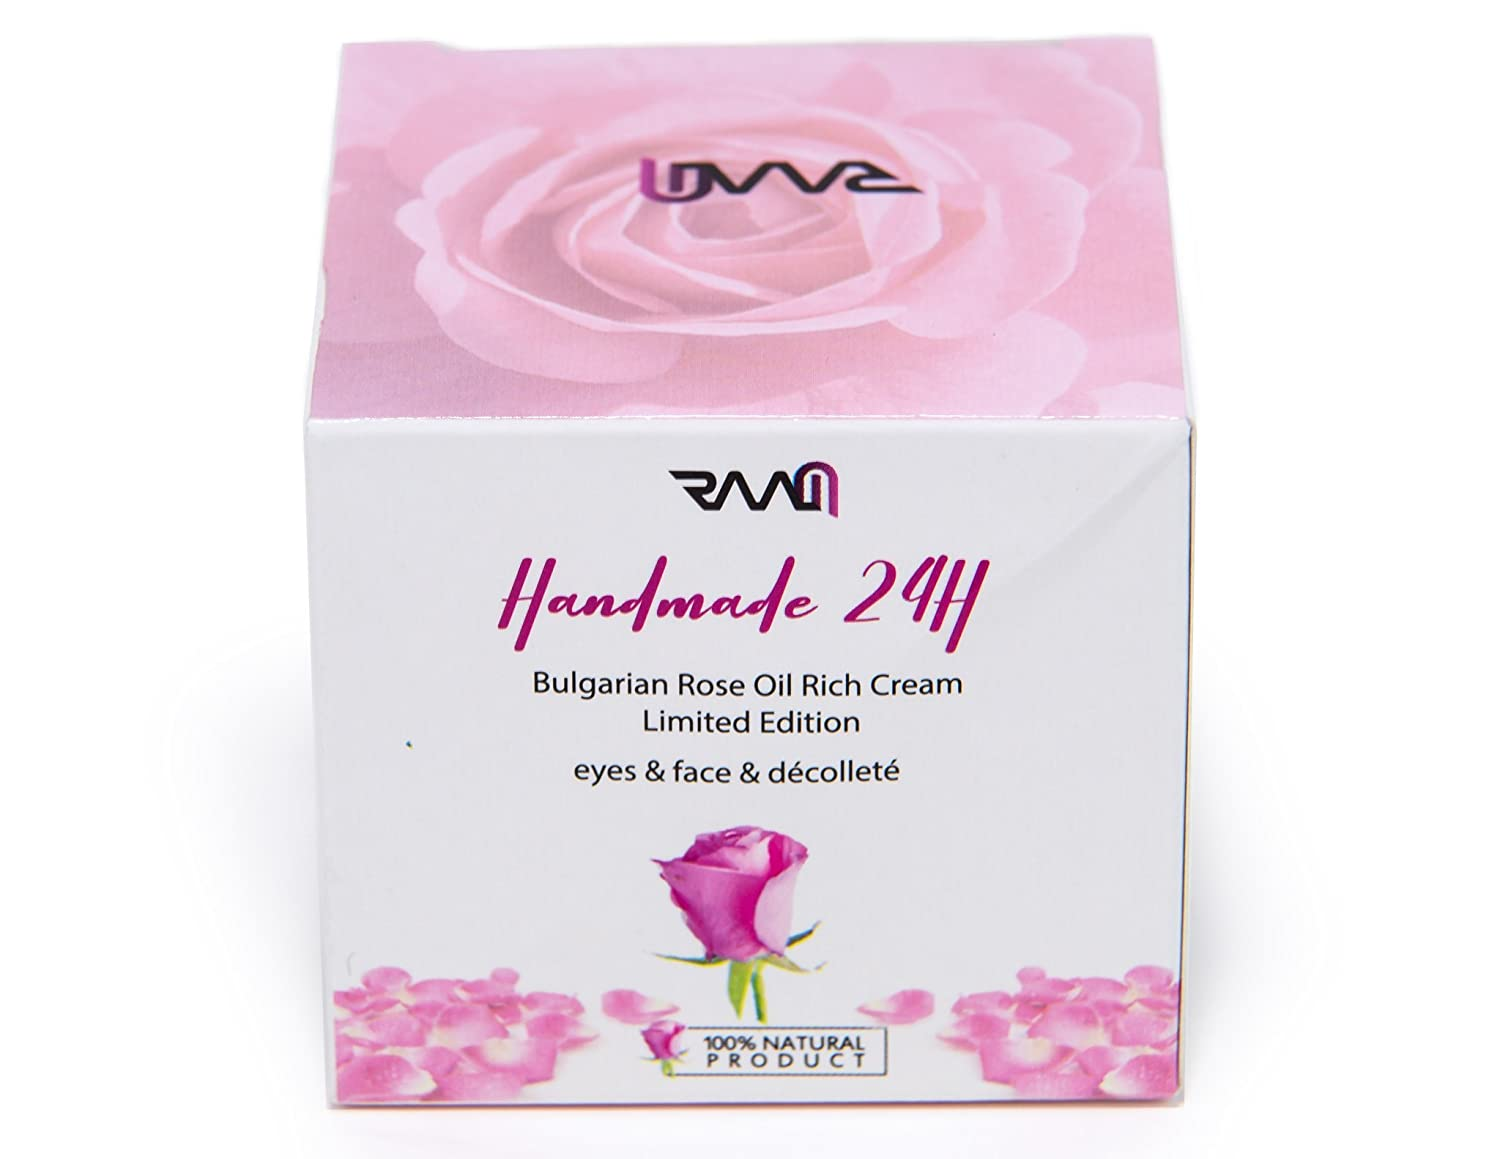 RAAM Handmade 24H Bulgarian Rose Oil Rich Eyes, Neck and decolletage Cream Limited Edition - Lab Tested and Certified 100% Natural Product (50 ml)